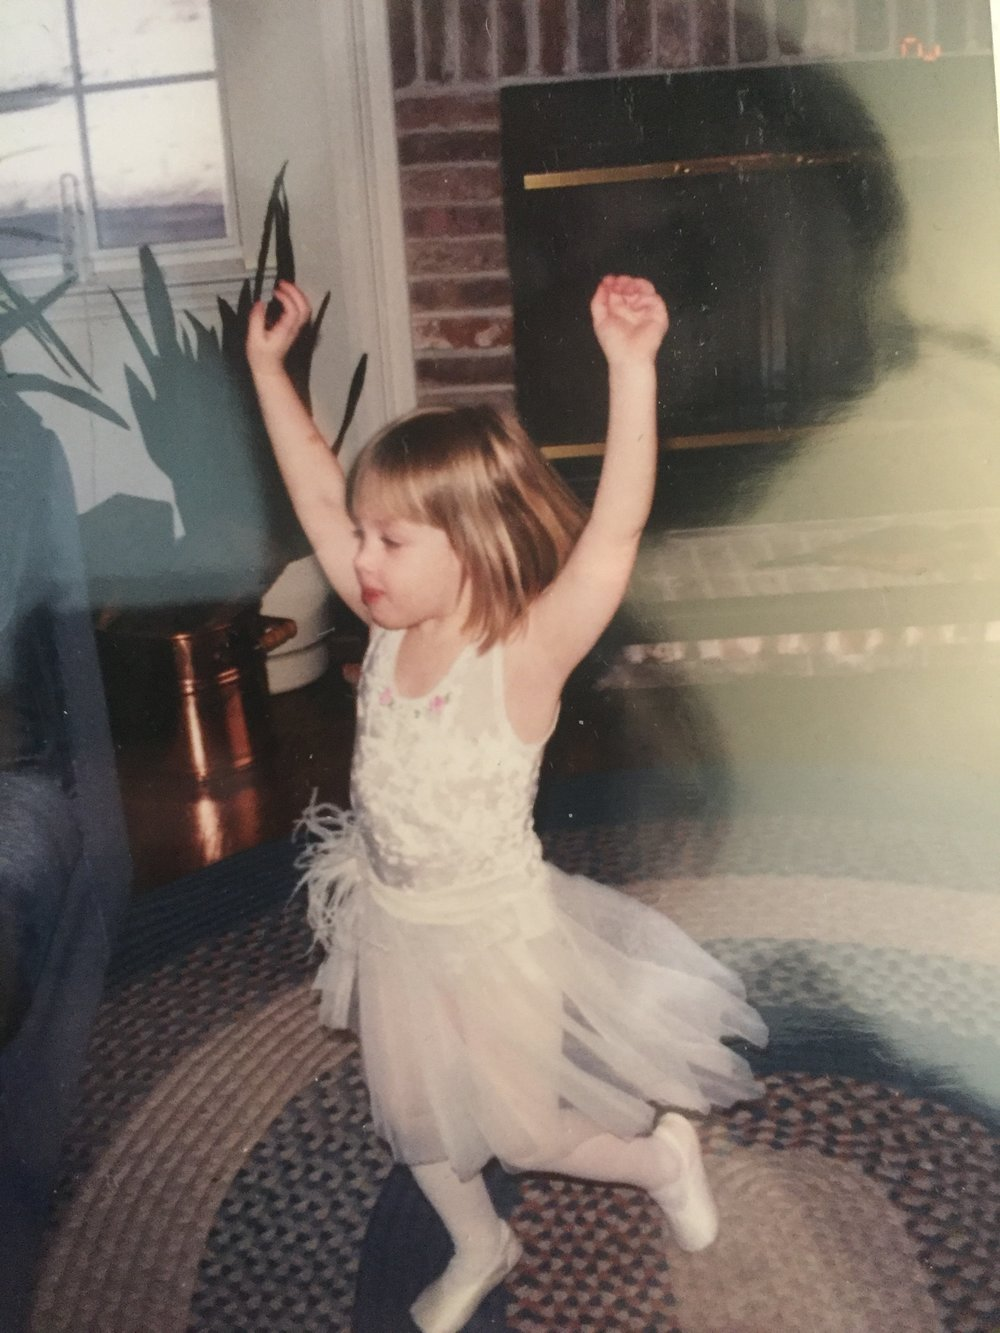 Me as a child, looking very much like me as an adult this weekend: free.